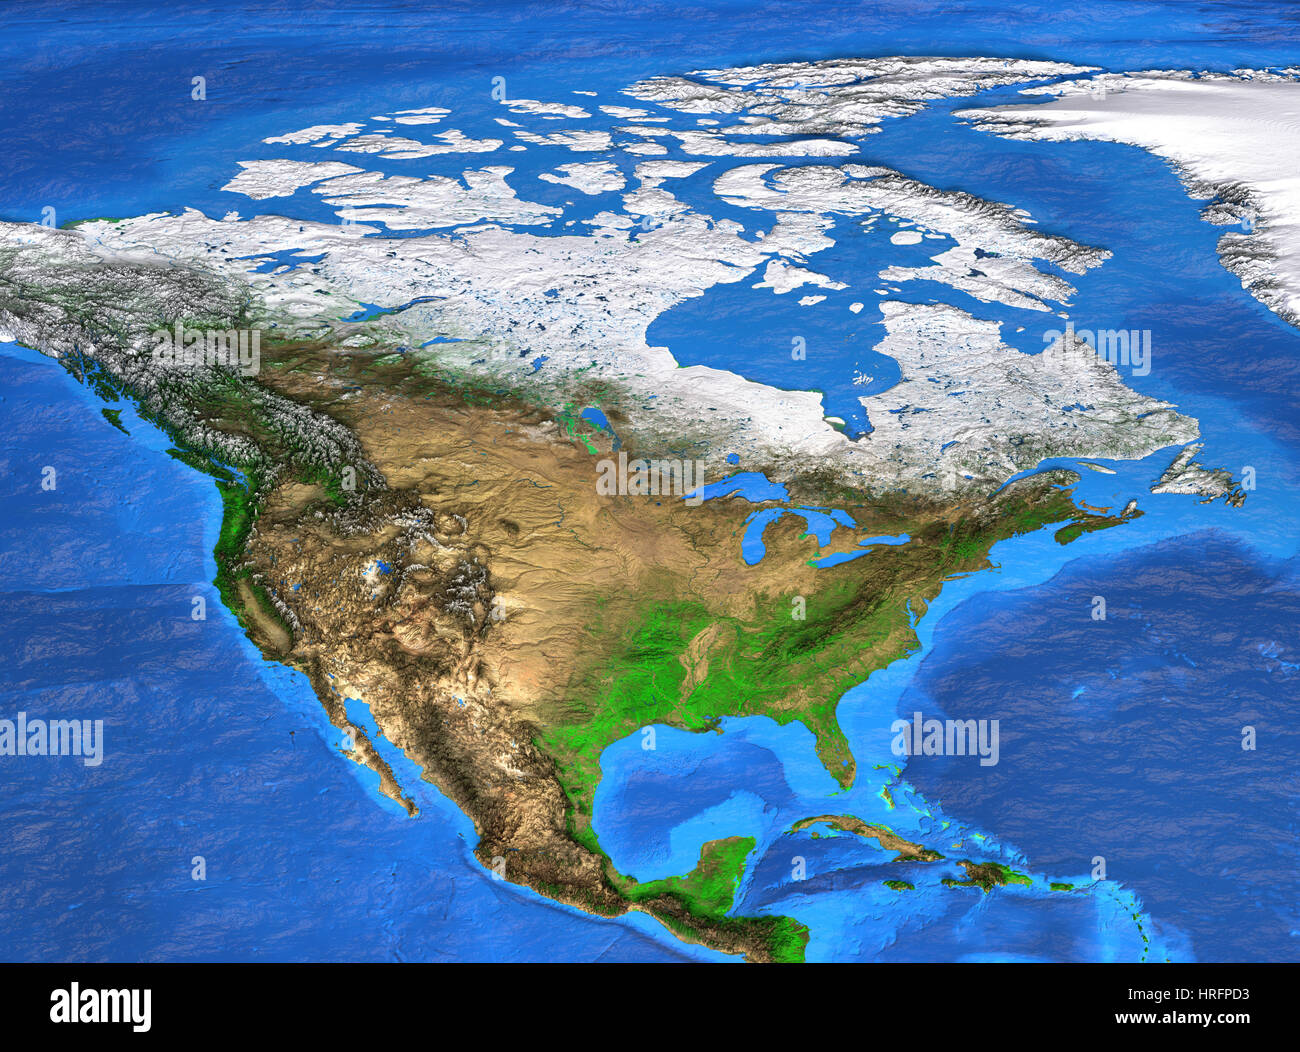 Detailed satellite view of the Earth and its landforms. North ... on